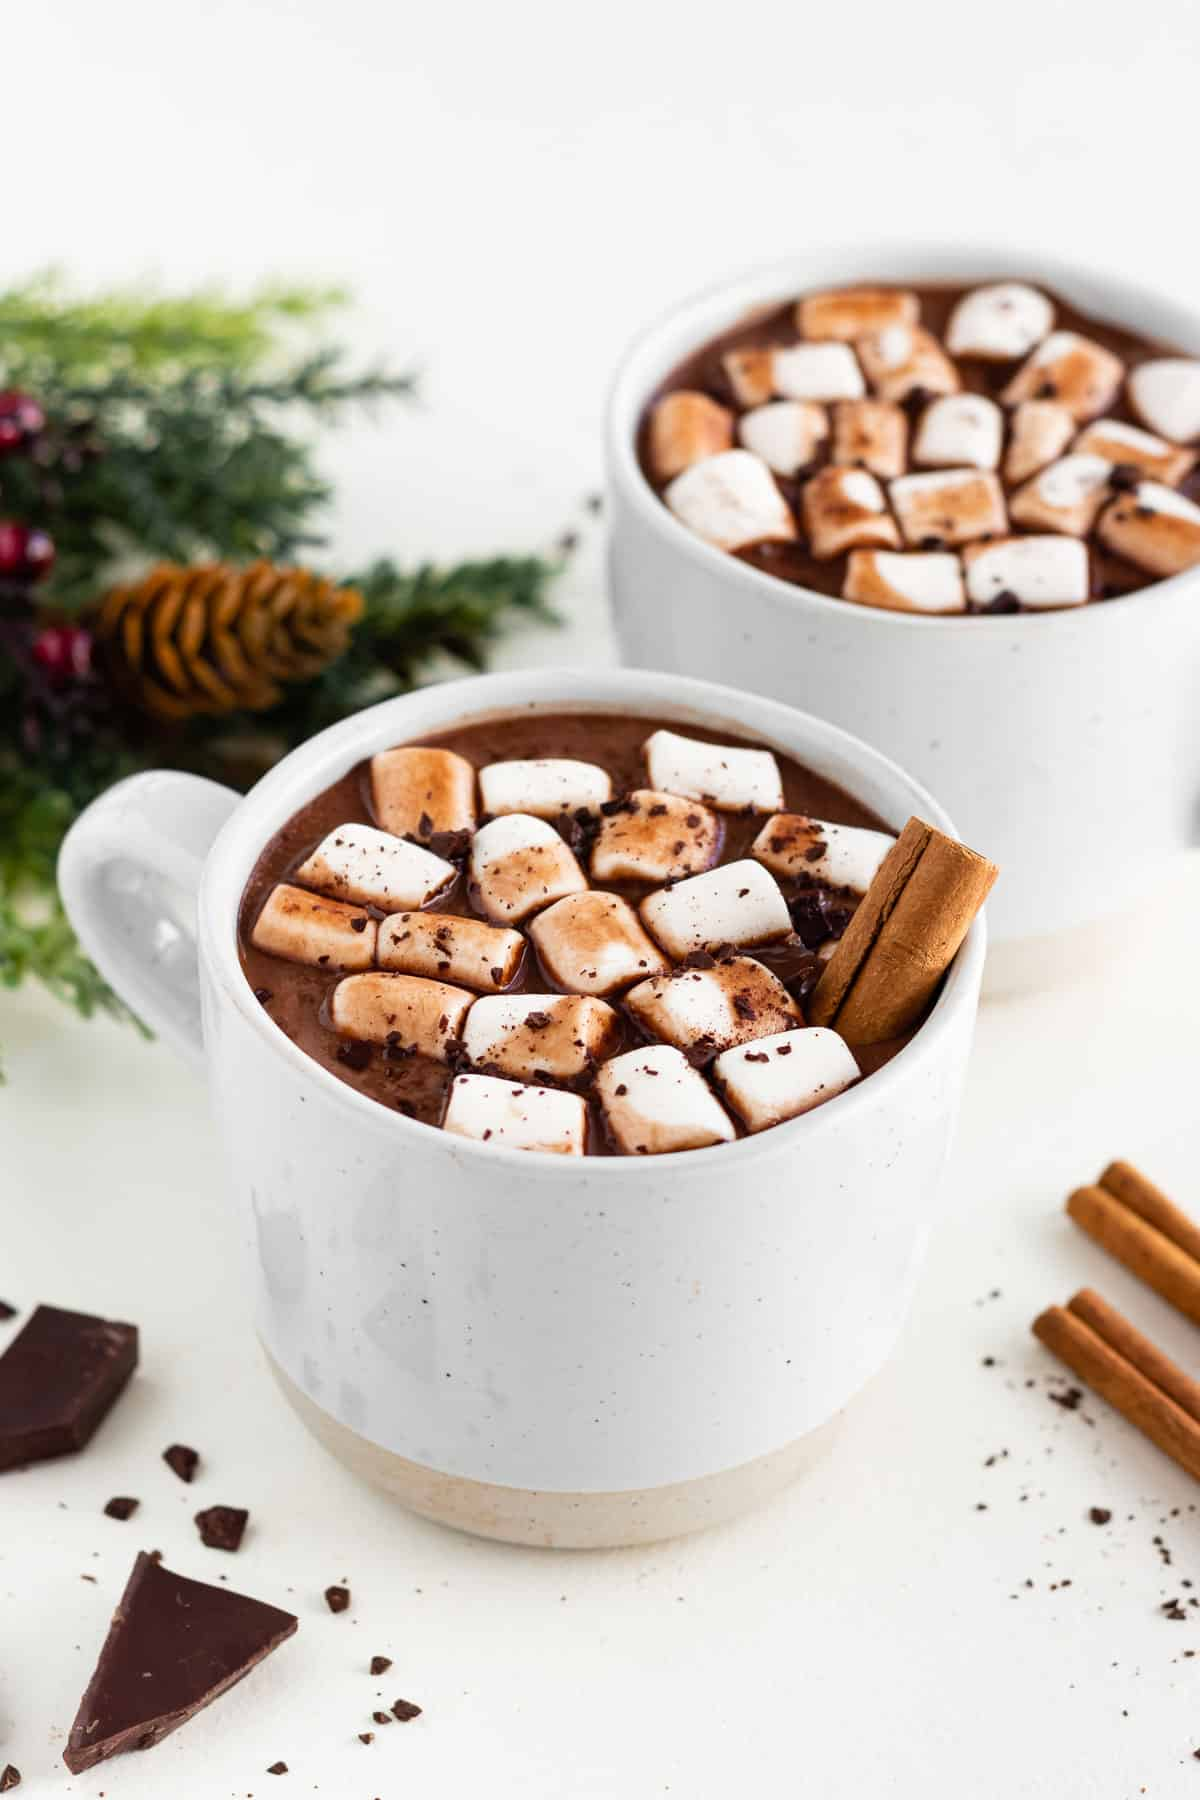 two ceramic mugs filled with vegan hot chocolate, mini marshmallows, and cinnamon